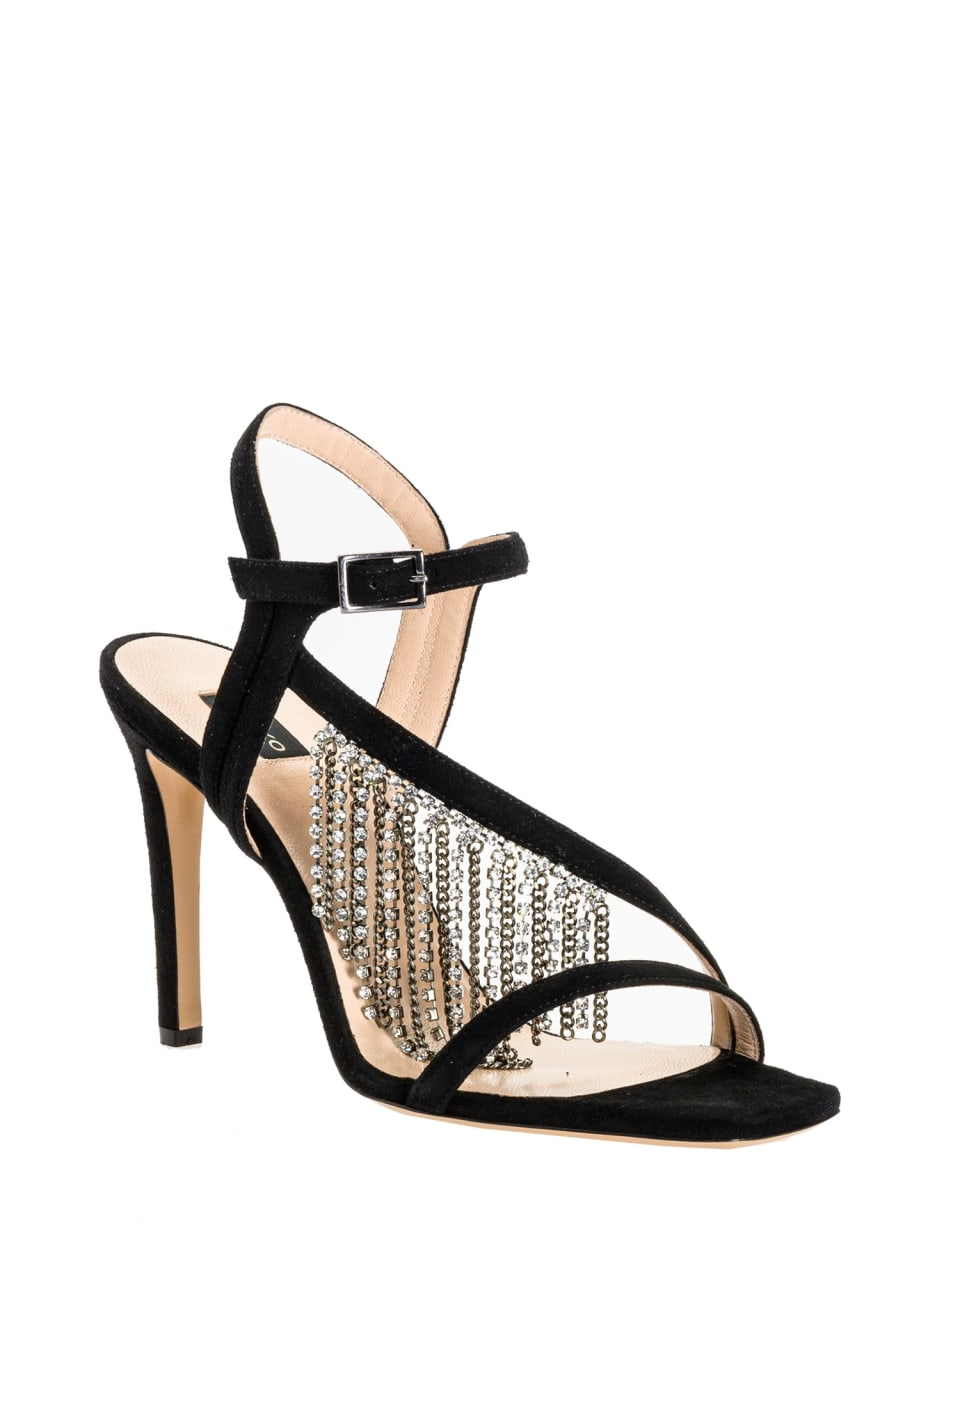 Sandals with cascade of rhinestones - Pinko